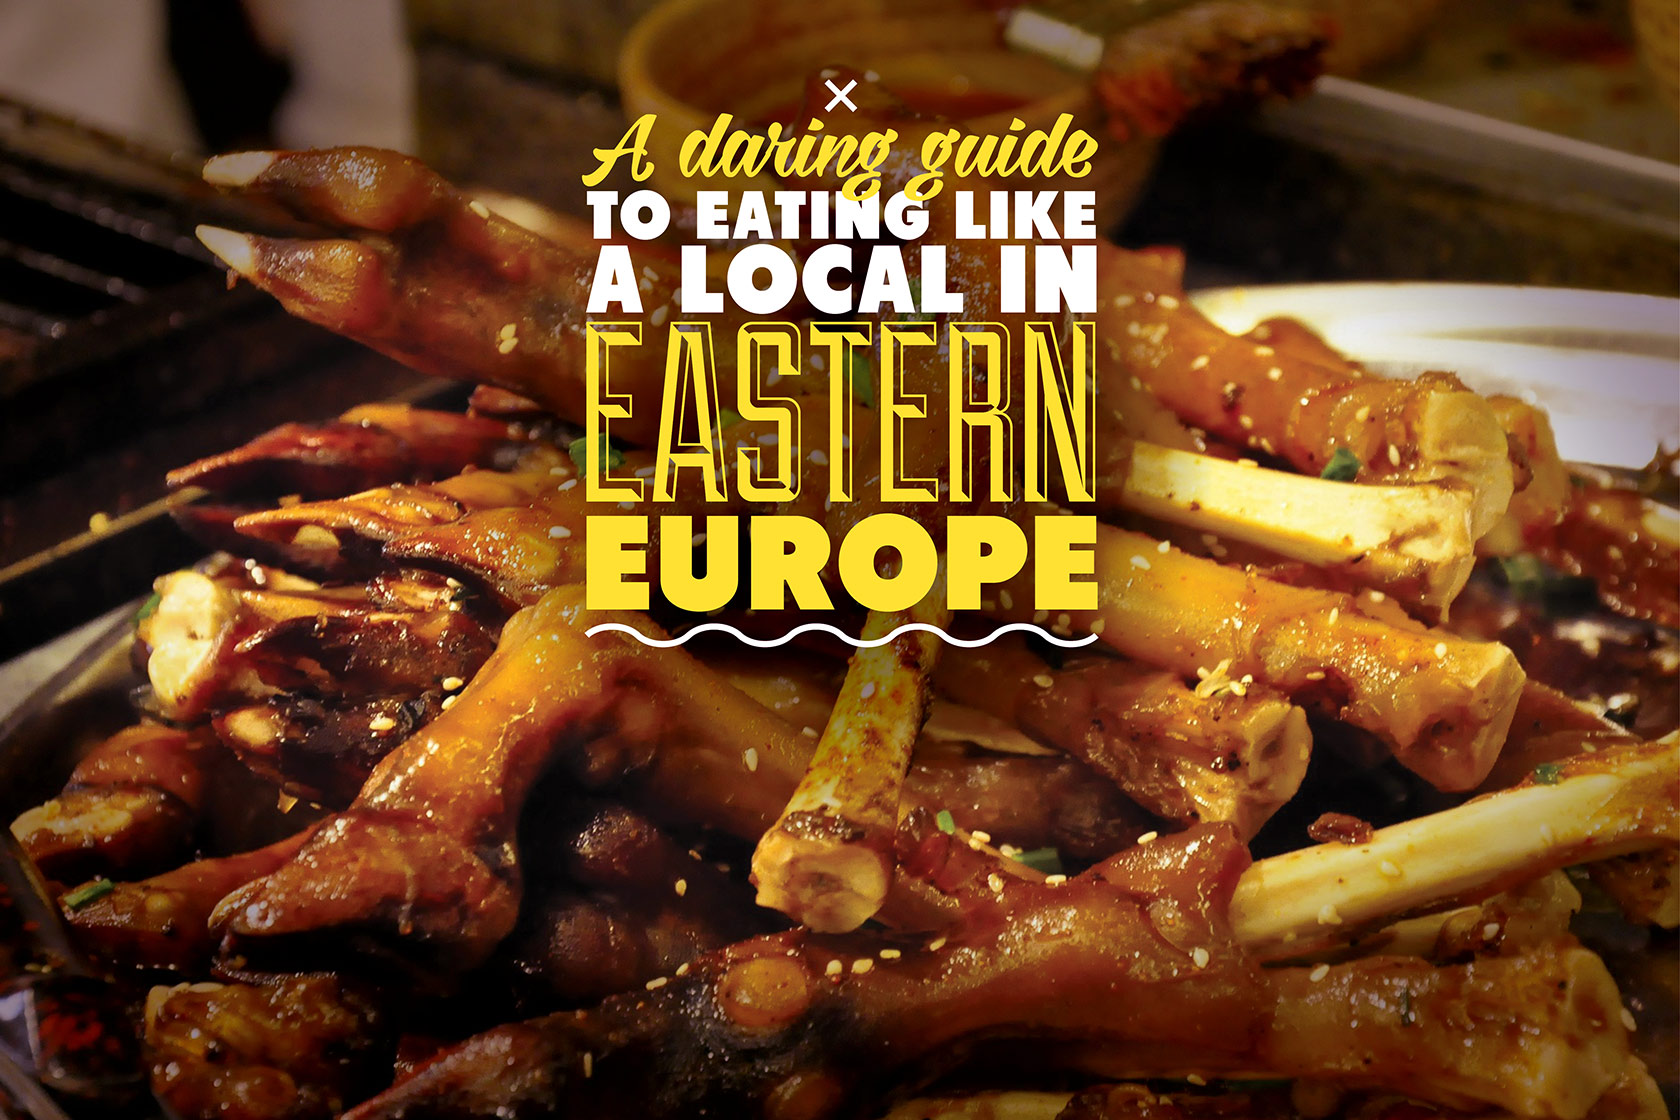 Bon appetit: bad eating habits of Russians, who enrage foreigners 30